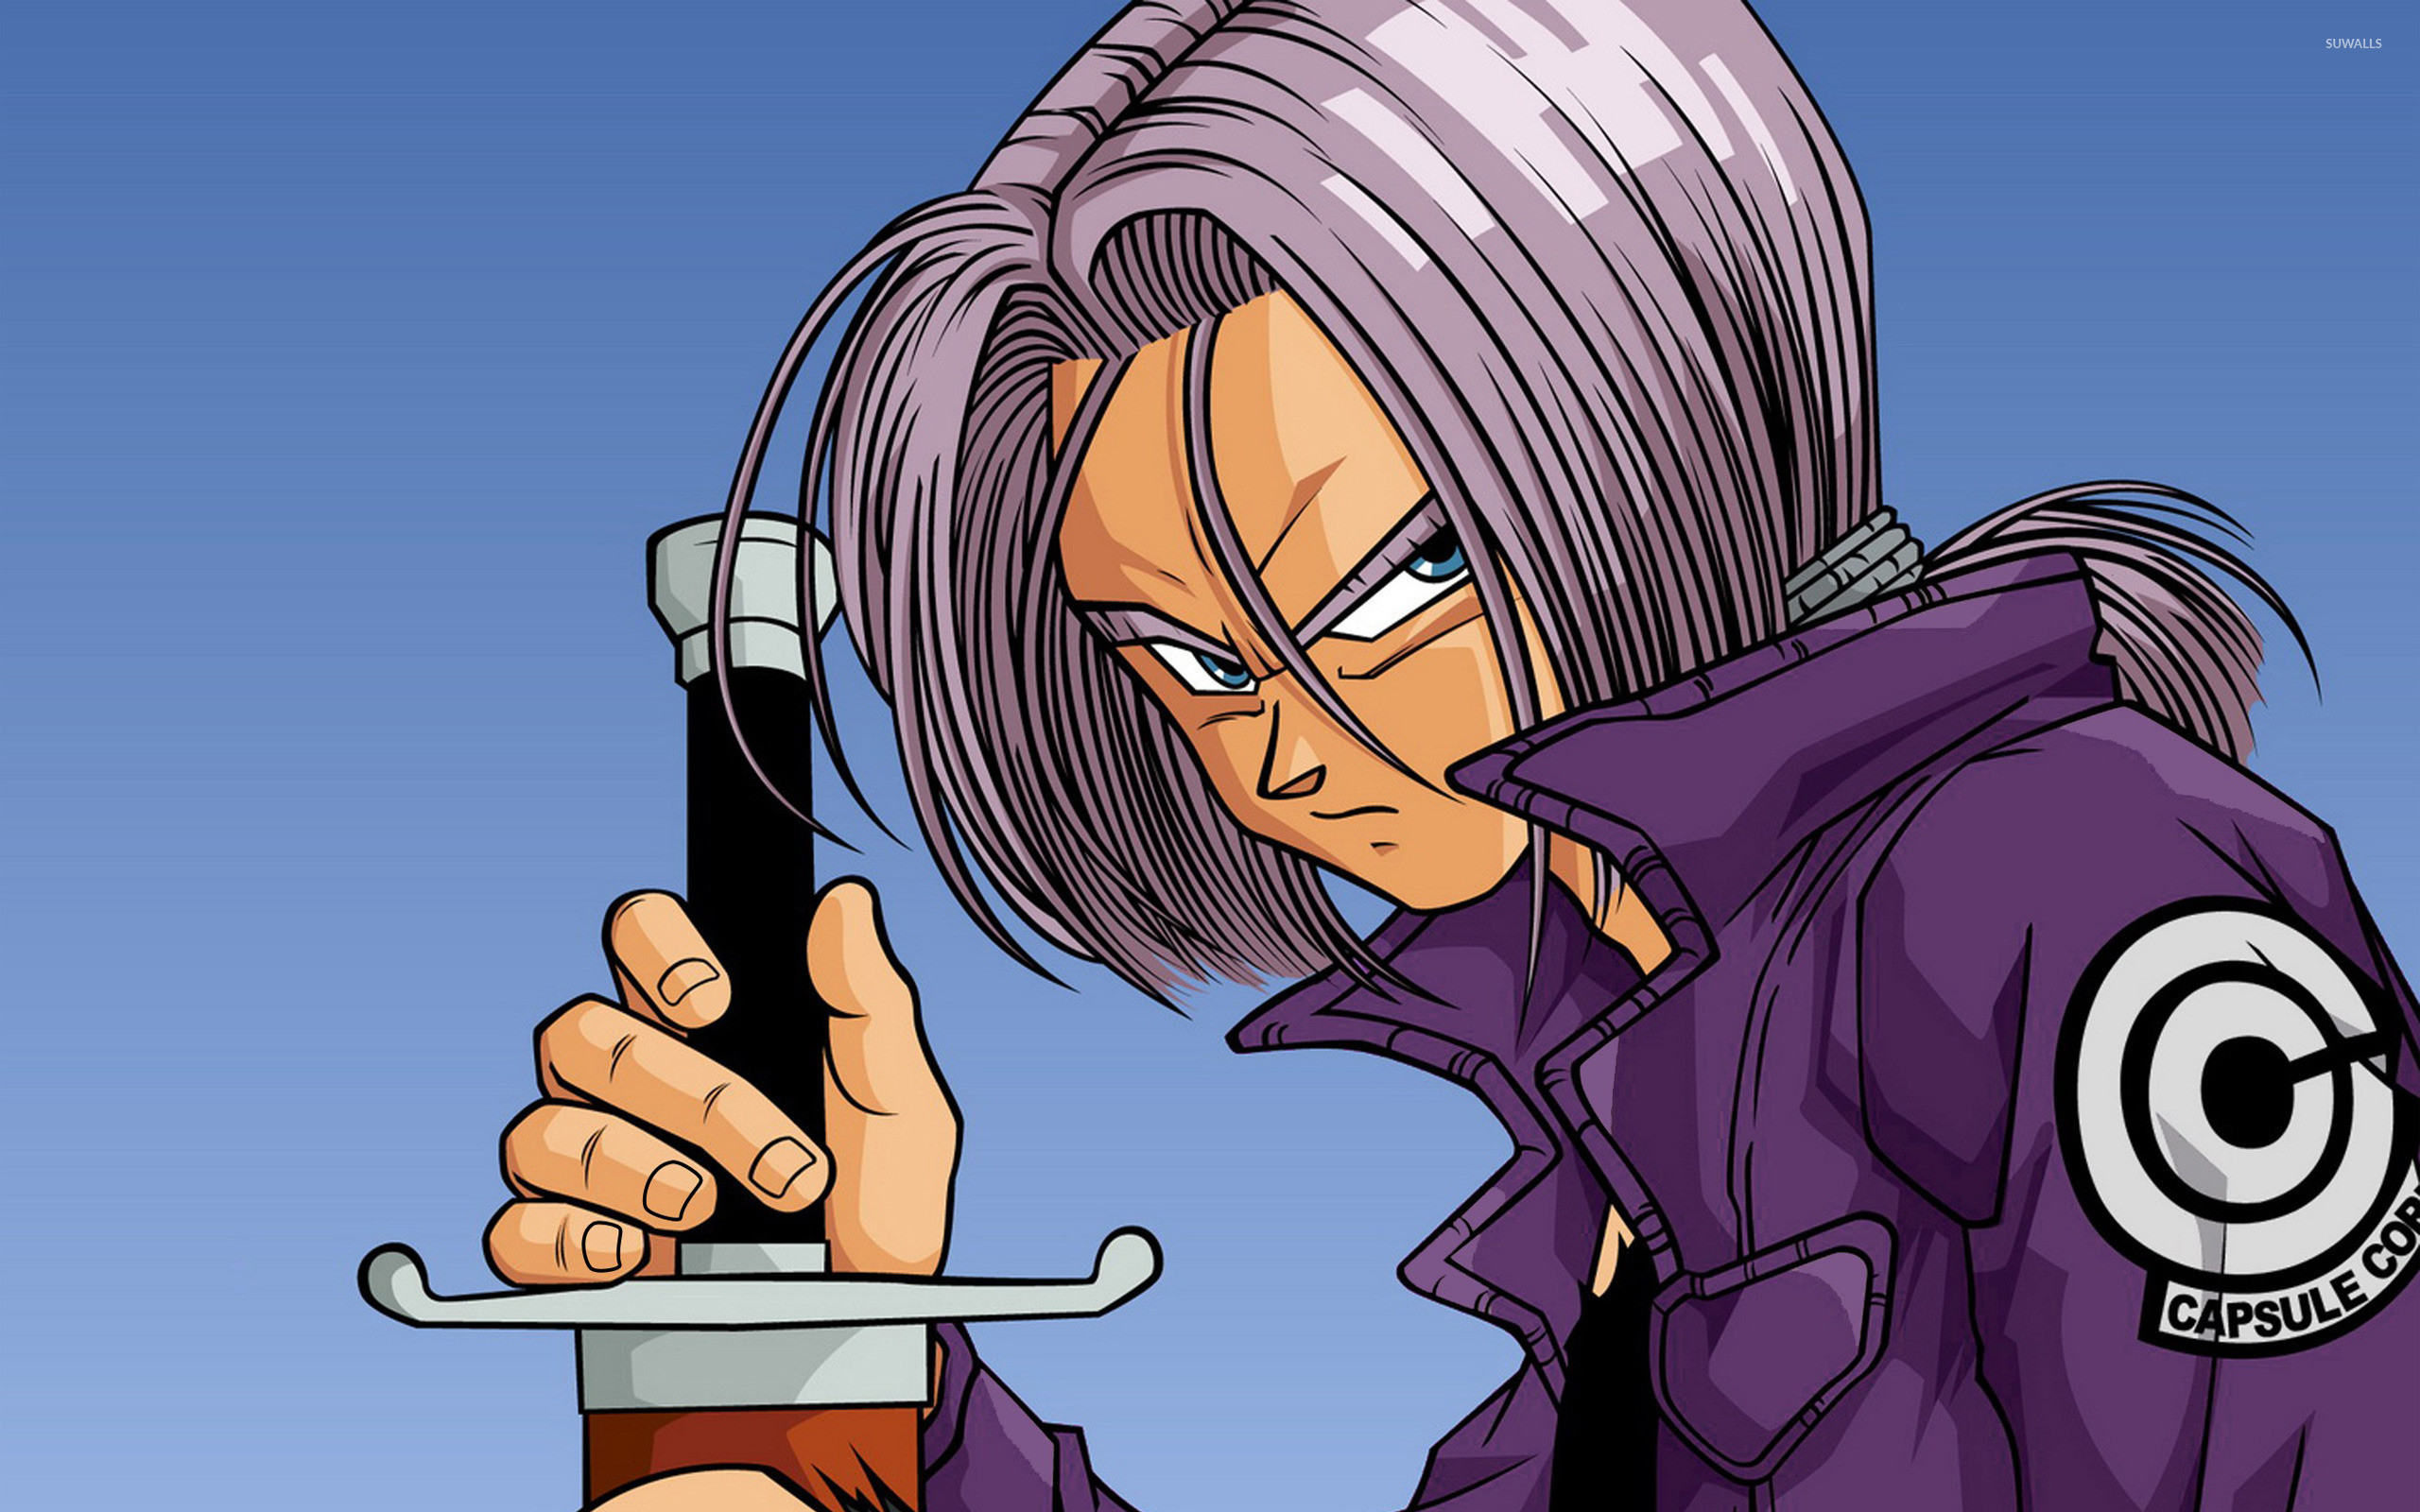 Dragon Ball Z Trunks Wallpaper 66 images 2560x1600